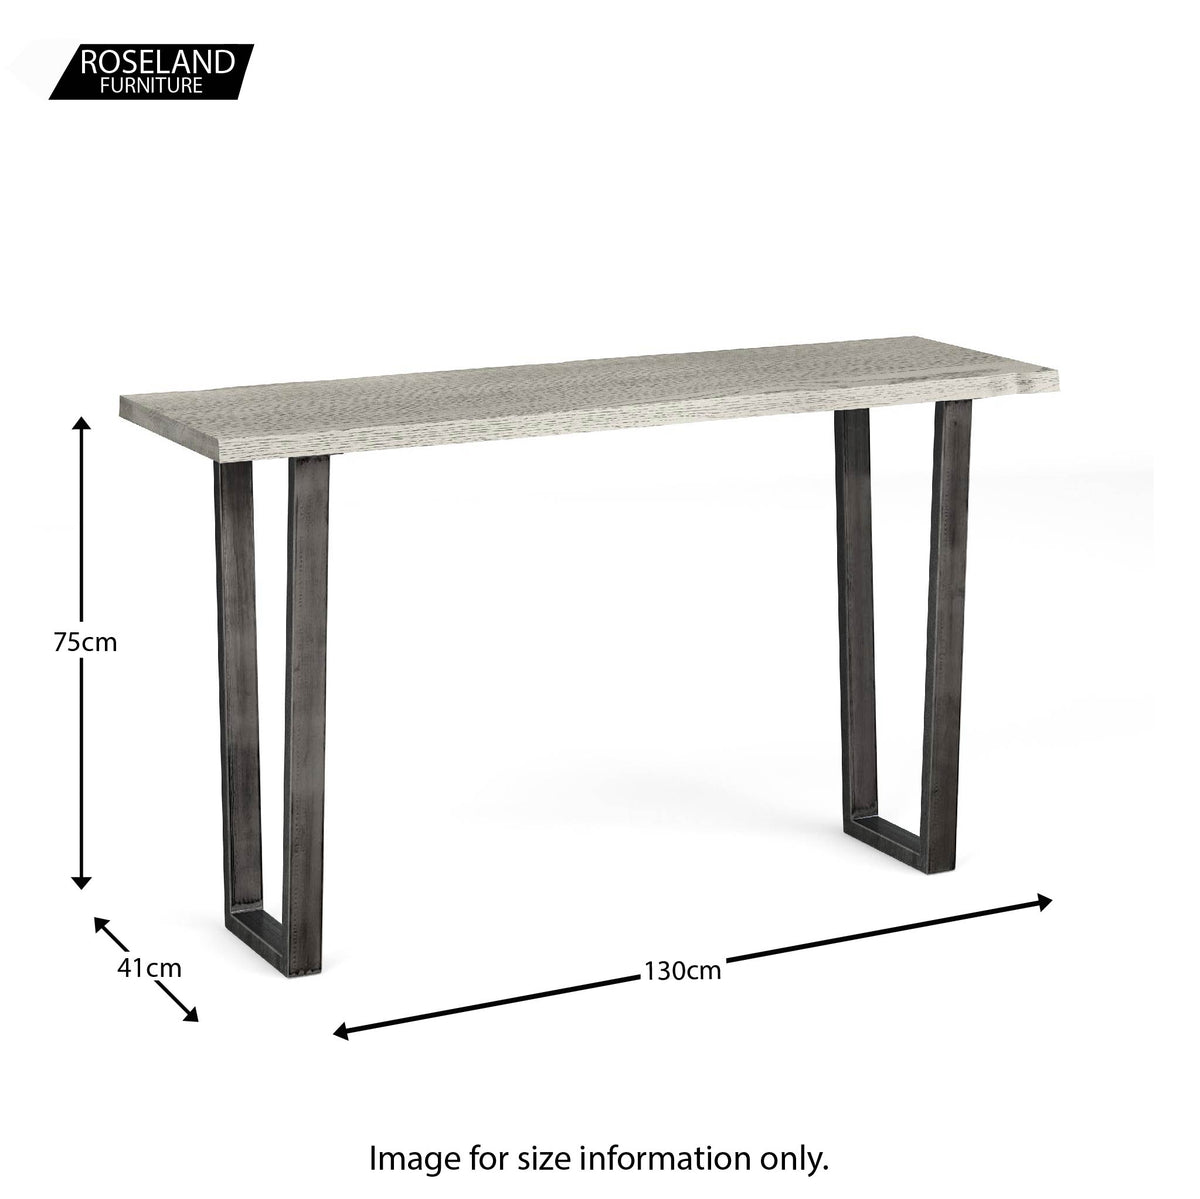 Soho Console or Hall Table - size guide